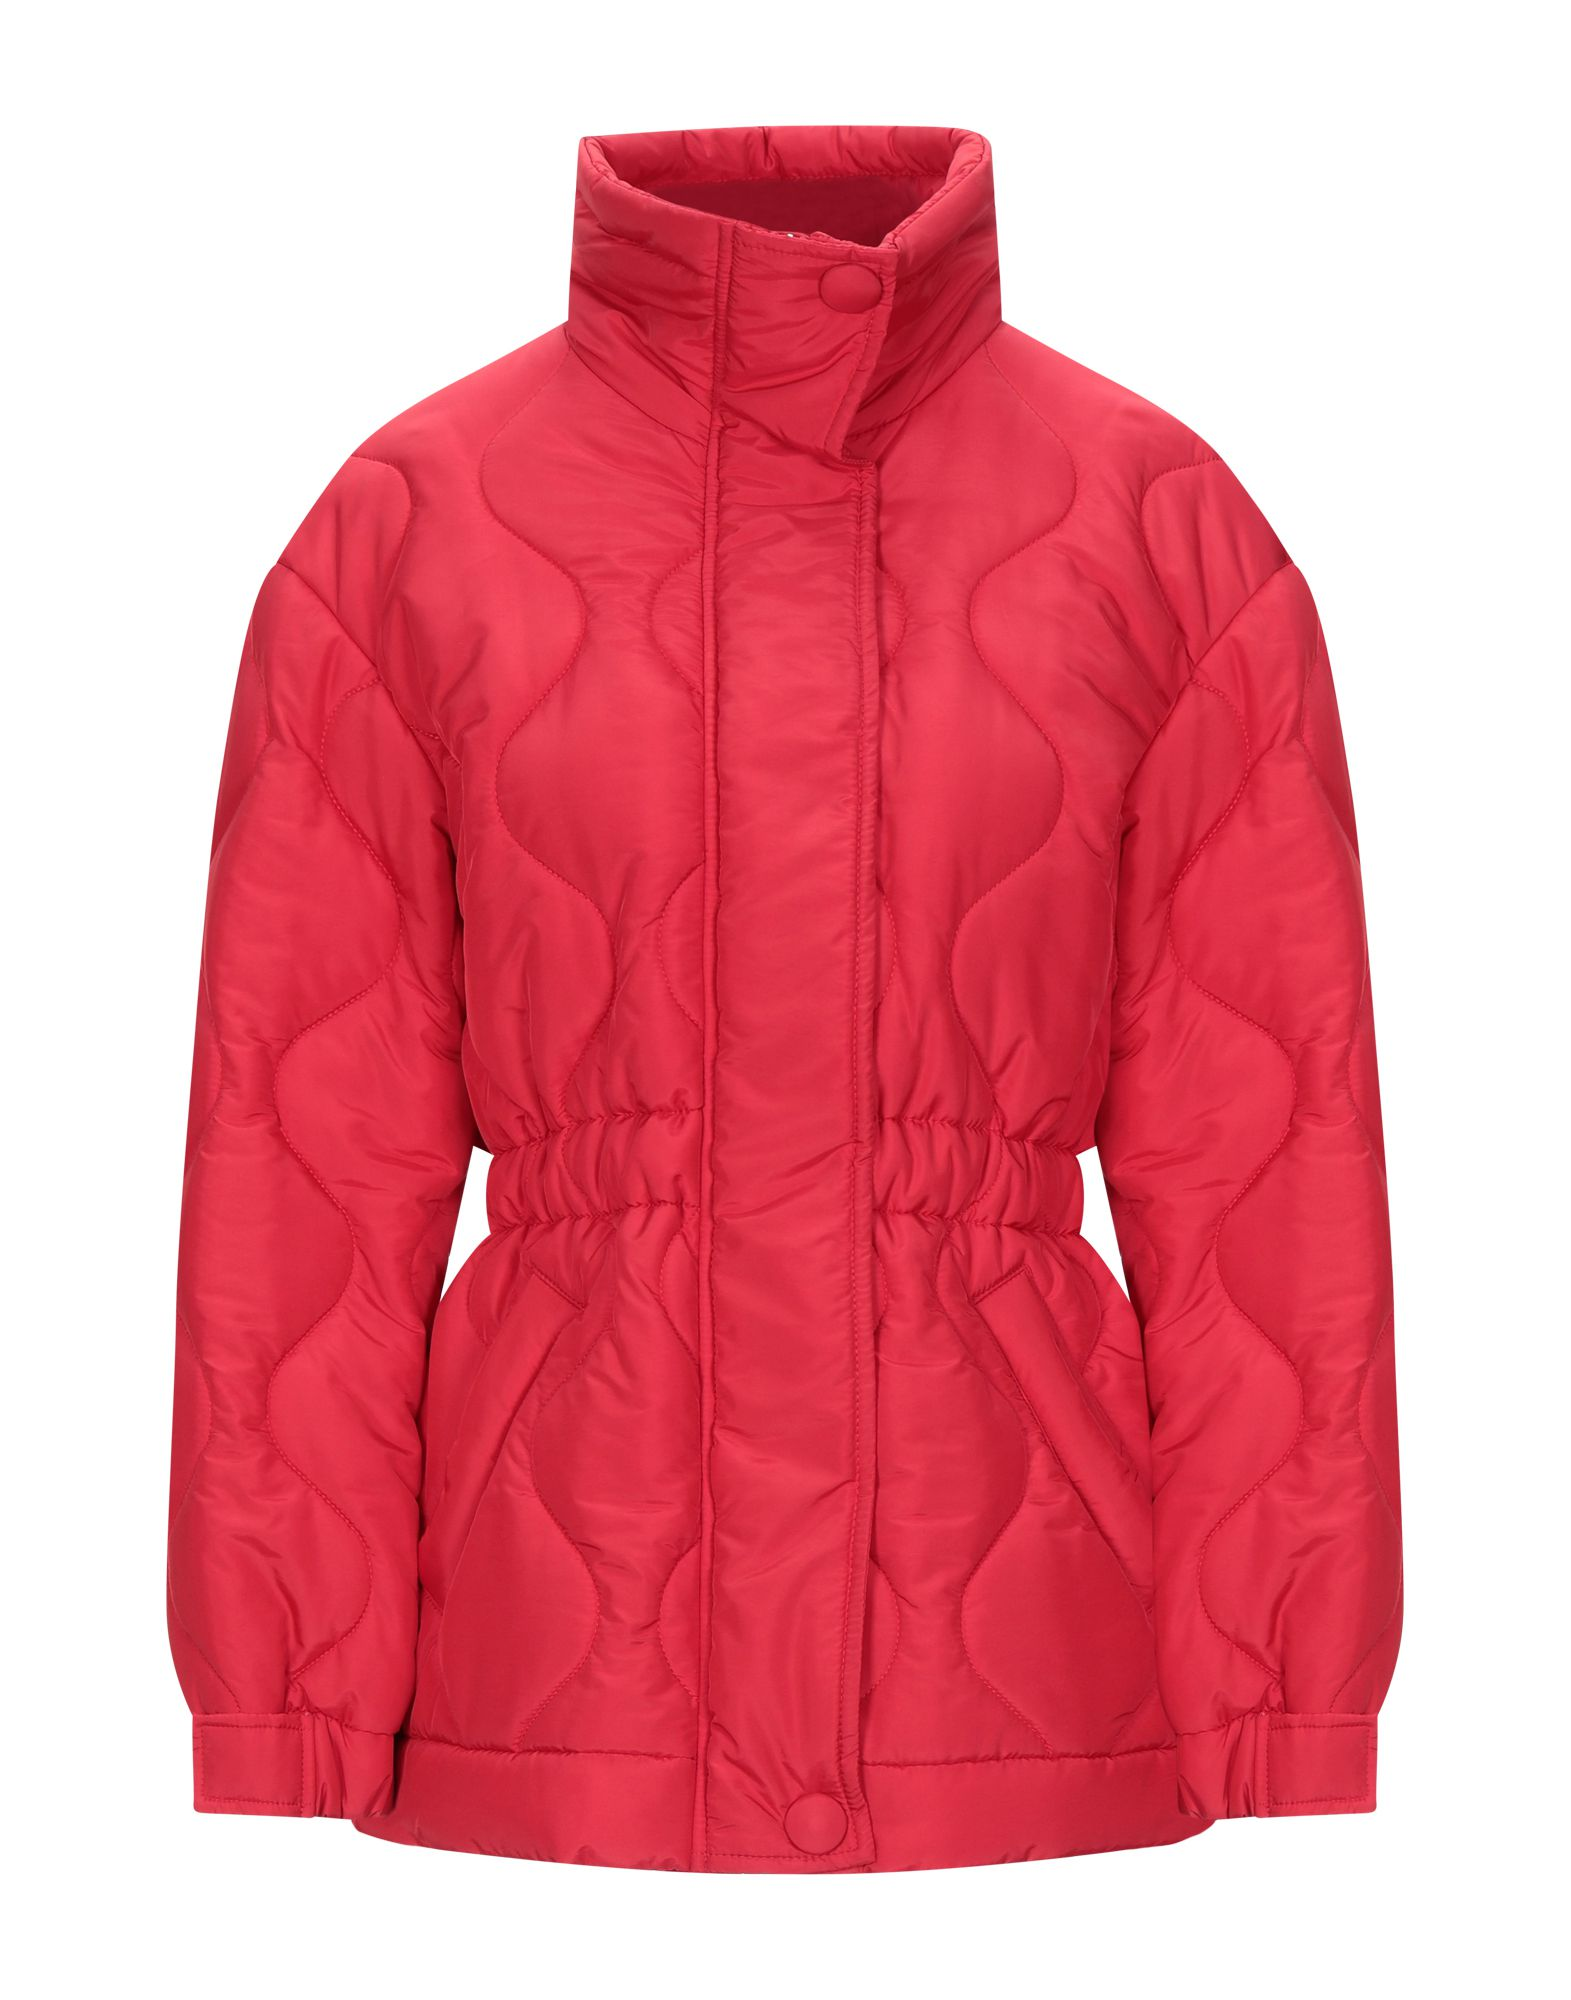 DONDUP Synthetic Down Jackets. techno fabric, logo, solid color, single-breasted, snap-buttons, zip, turtleneck, multipockets, long sleeves, internal padding. 58% Polyamide, 42% Polyester